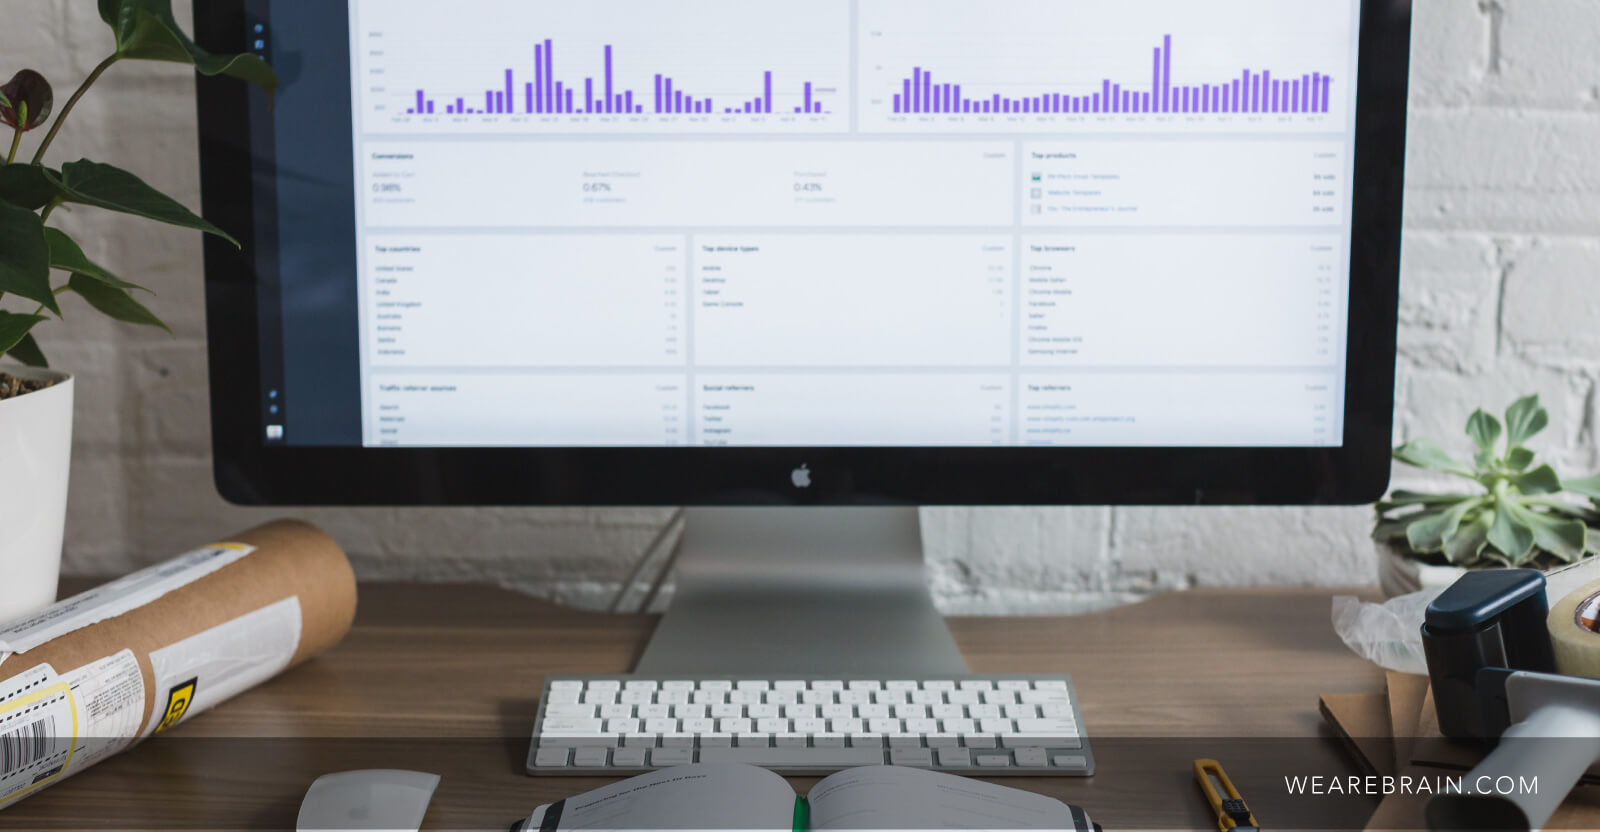 picture of an apple monitor showing some graphs